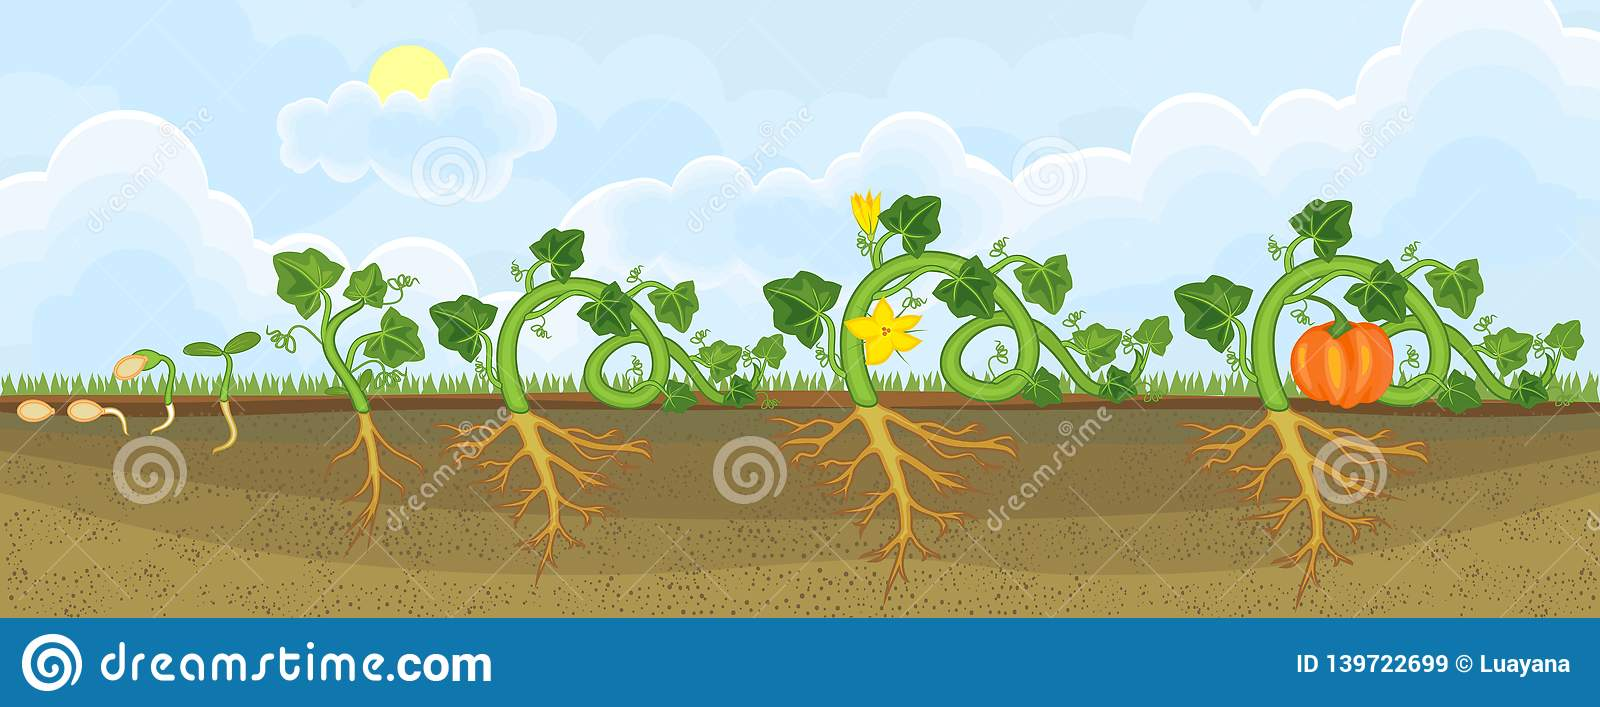 Life Cycle Of Pumpkin Plant  Growth Stages From Seeding To